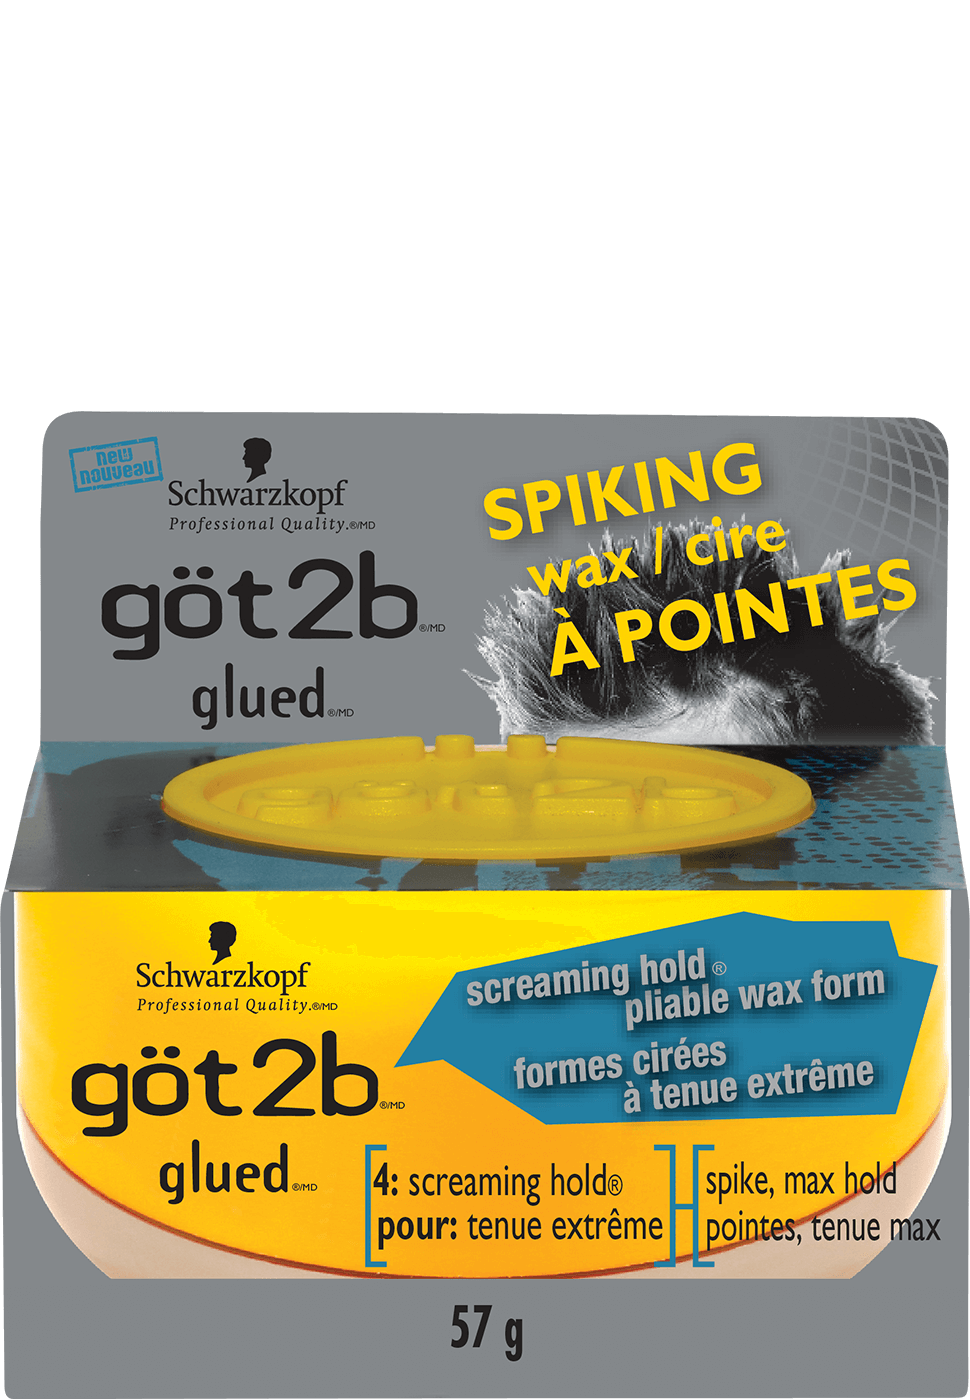 got2b_en_glued_spiking_wax970x1400